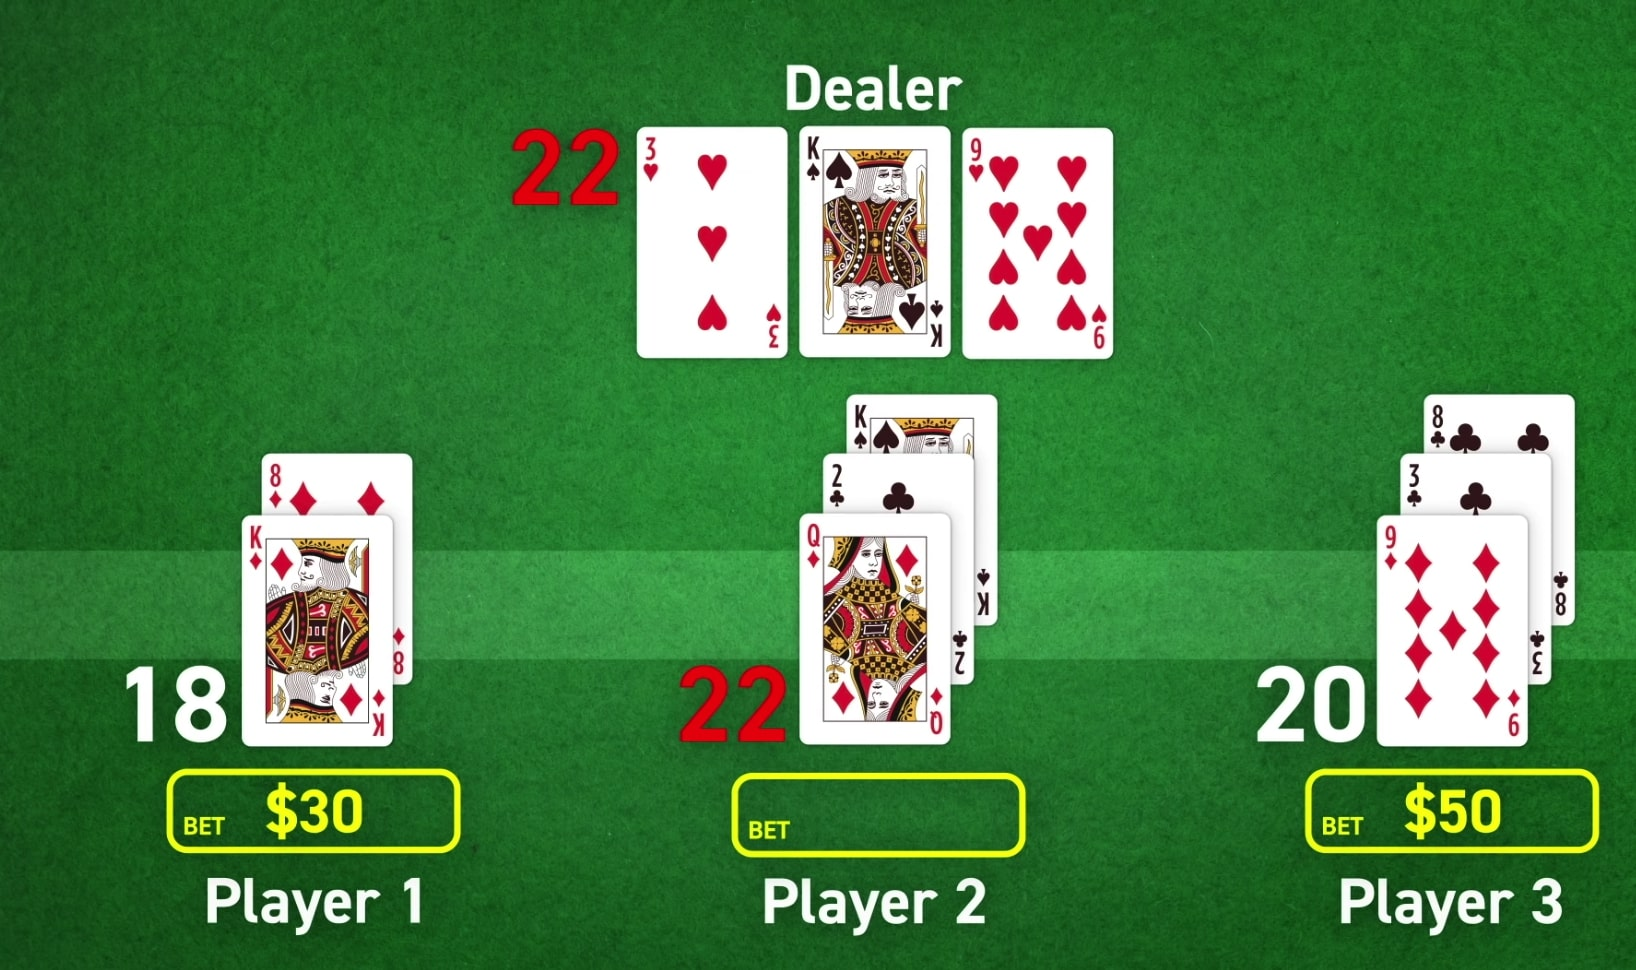 Card Counting - Case 1